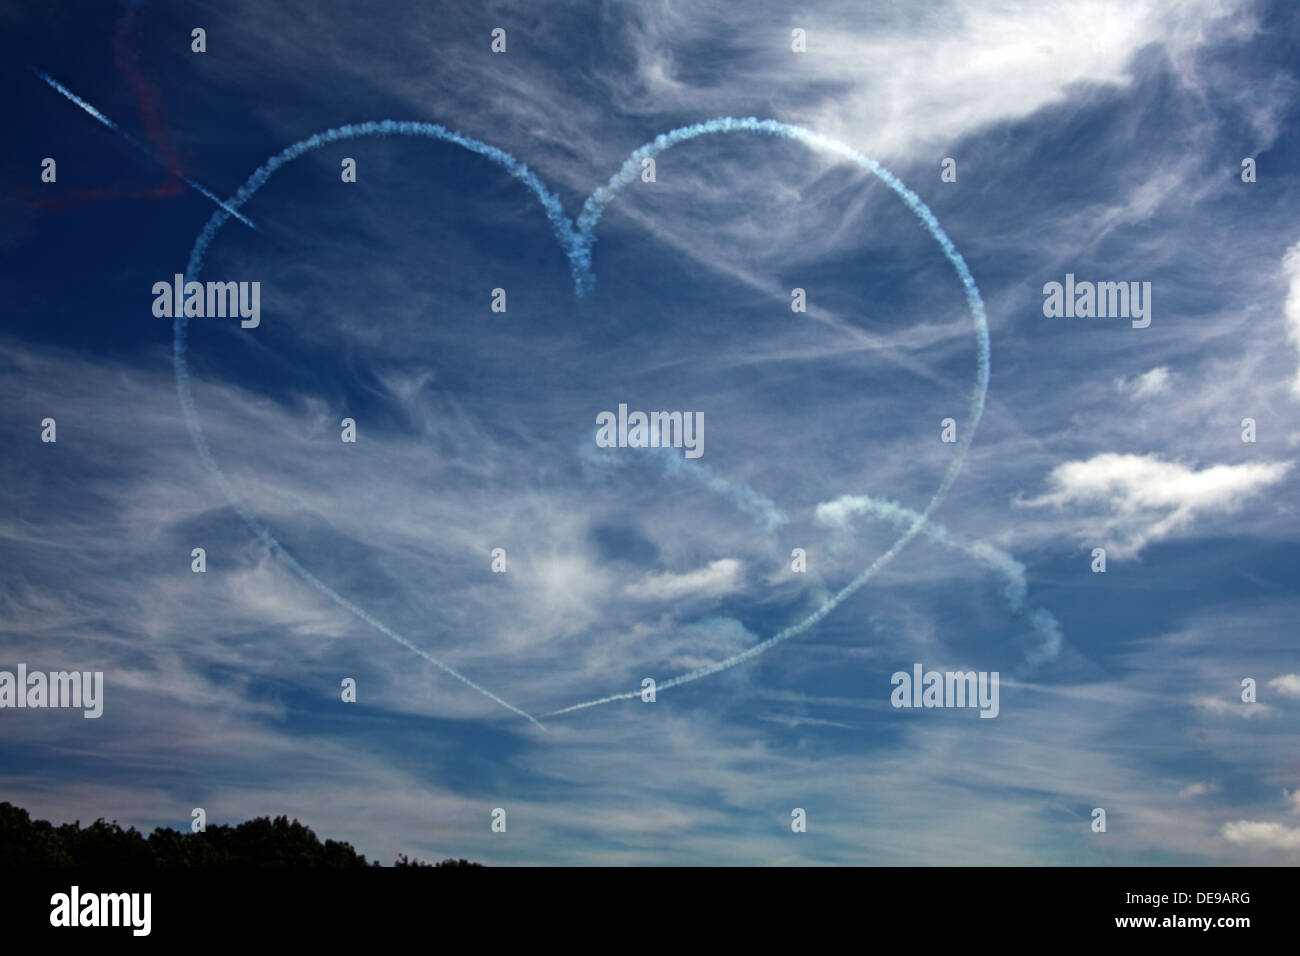 Heart in the sky,drawn by the Red Arrows air display team, England, UK - Stock Image